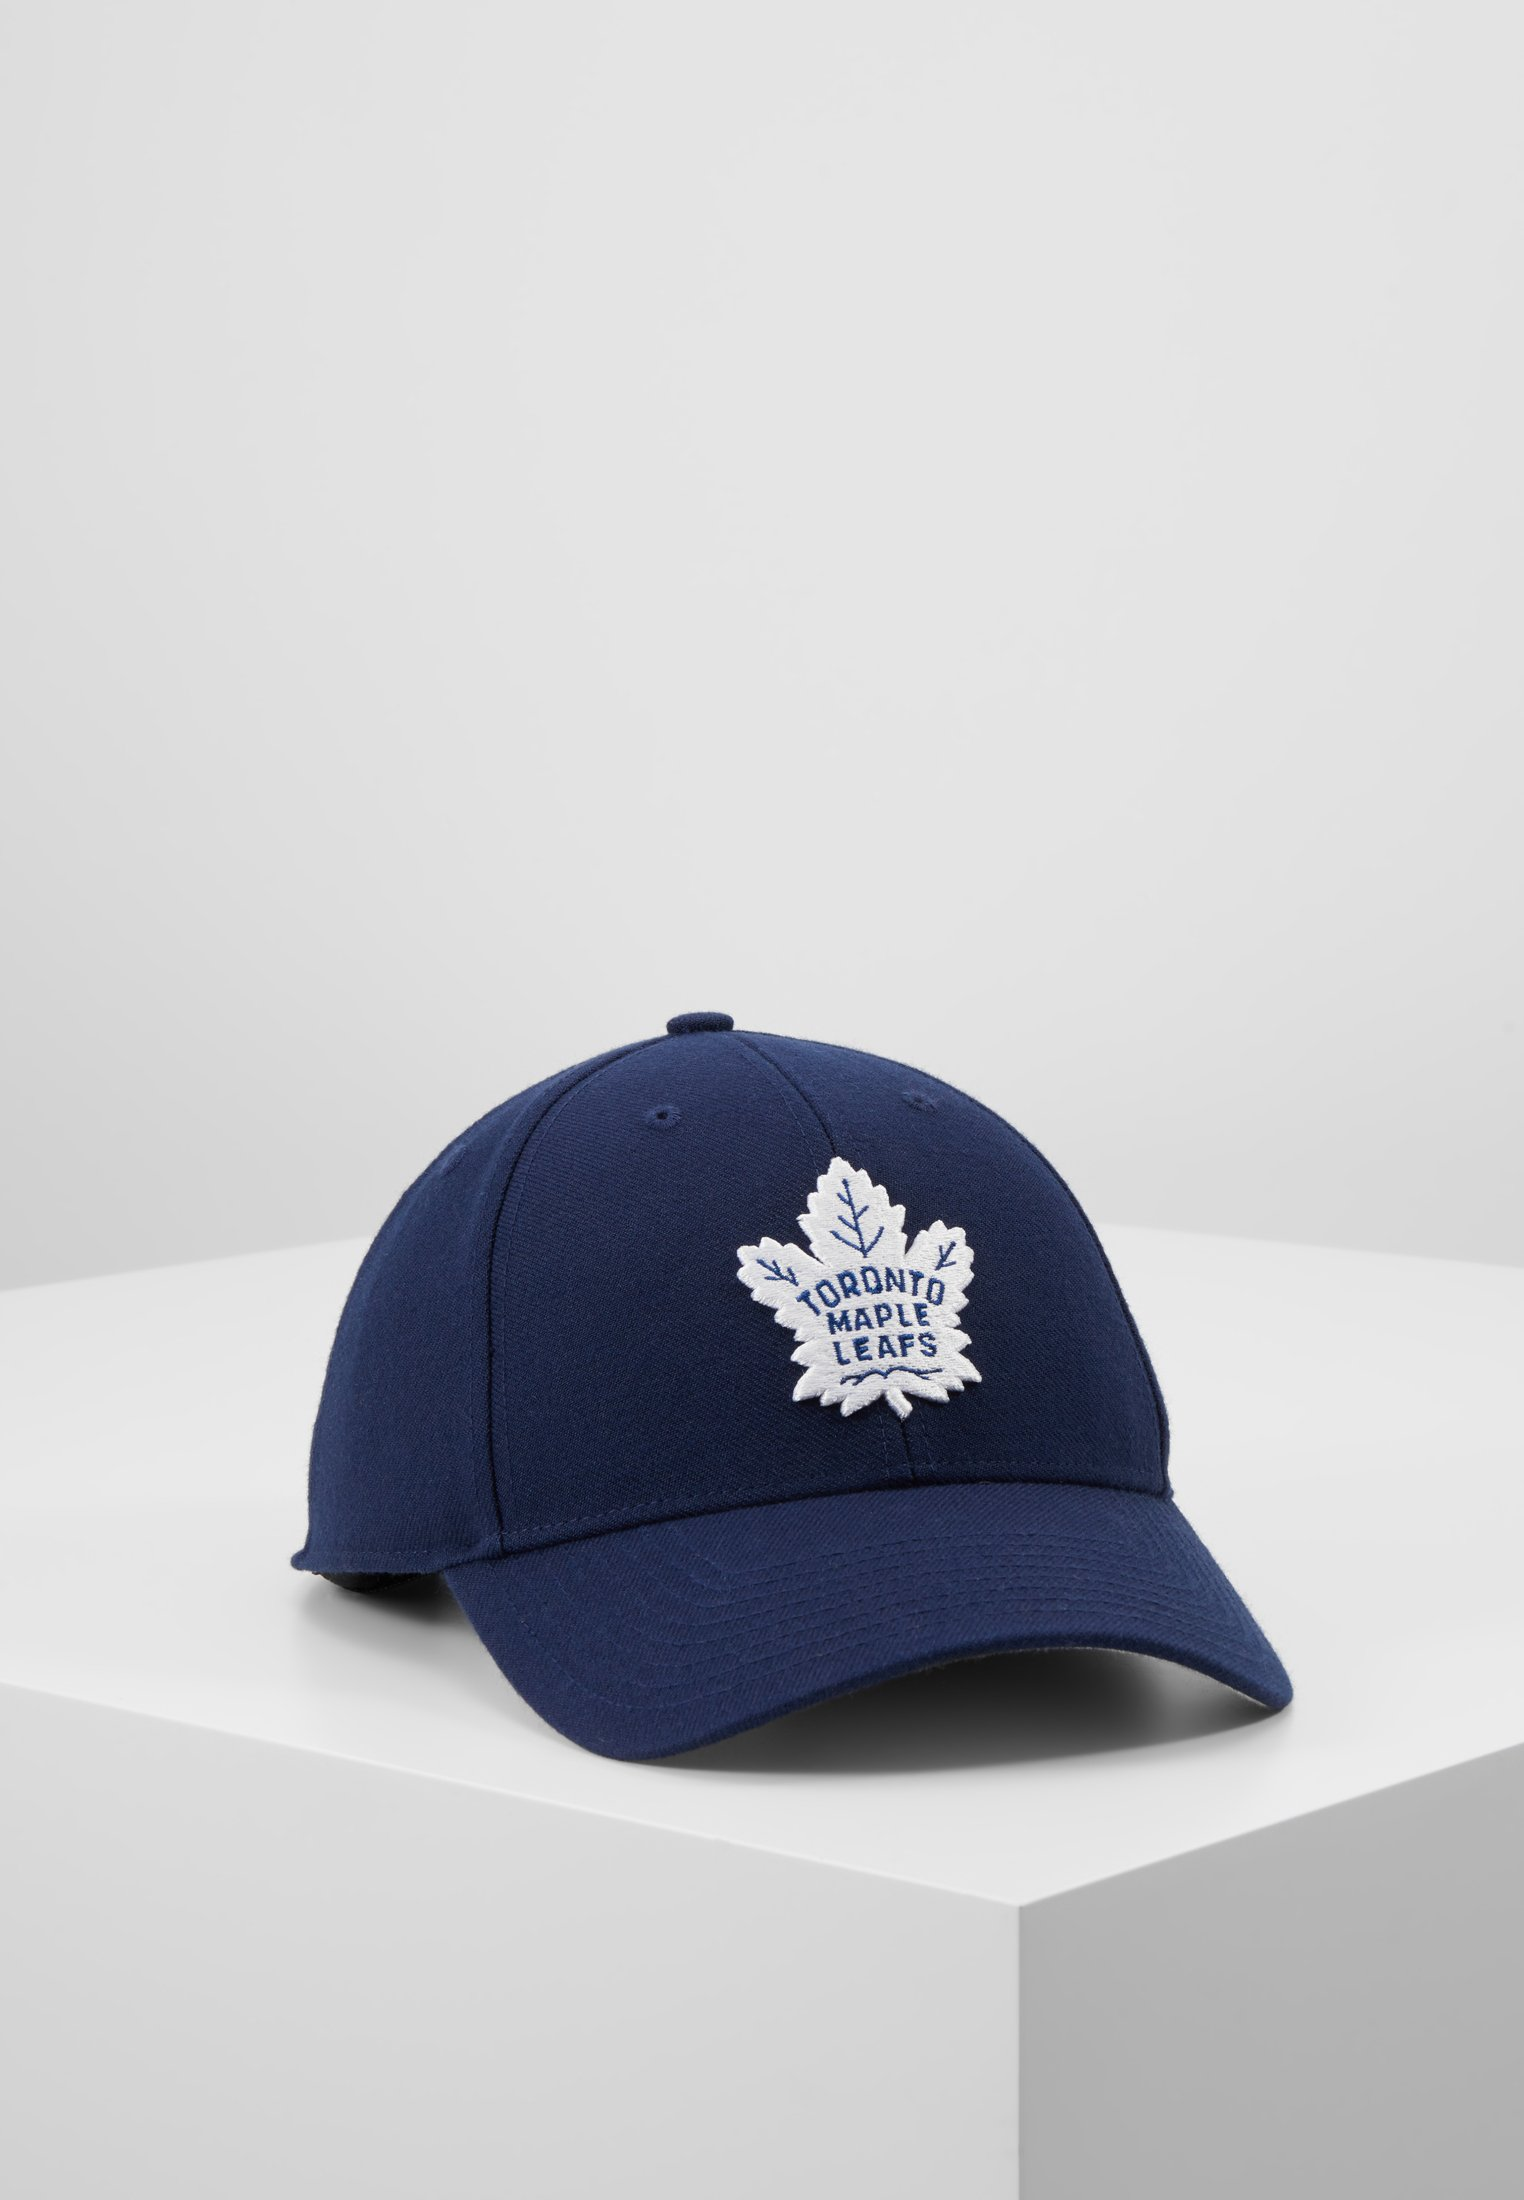 Homme TORONTO MAPLE LEAFS  - Casquette